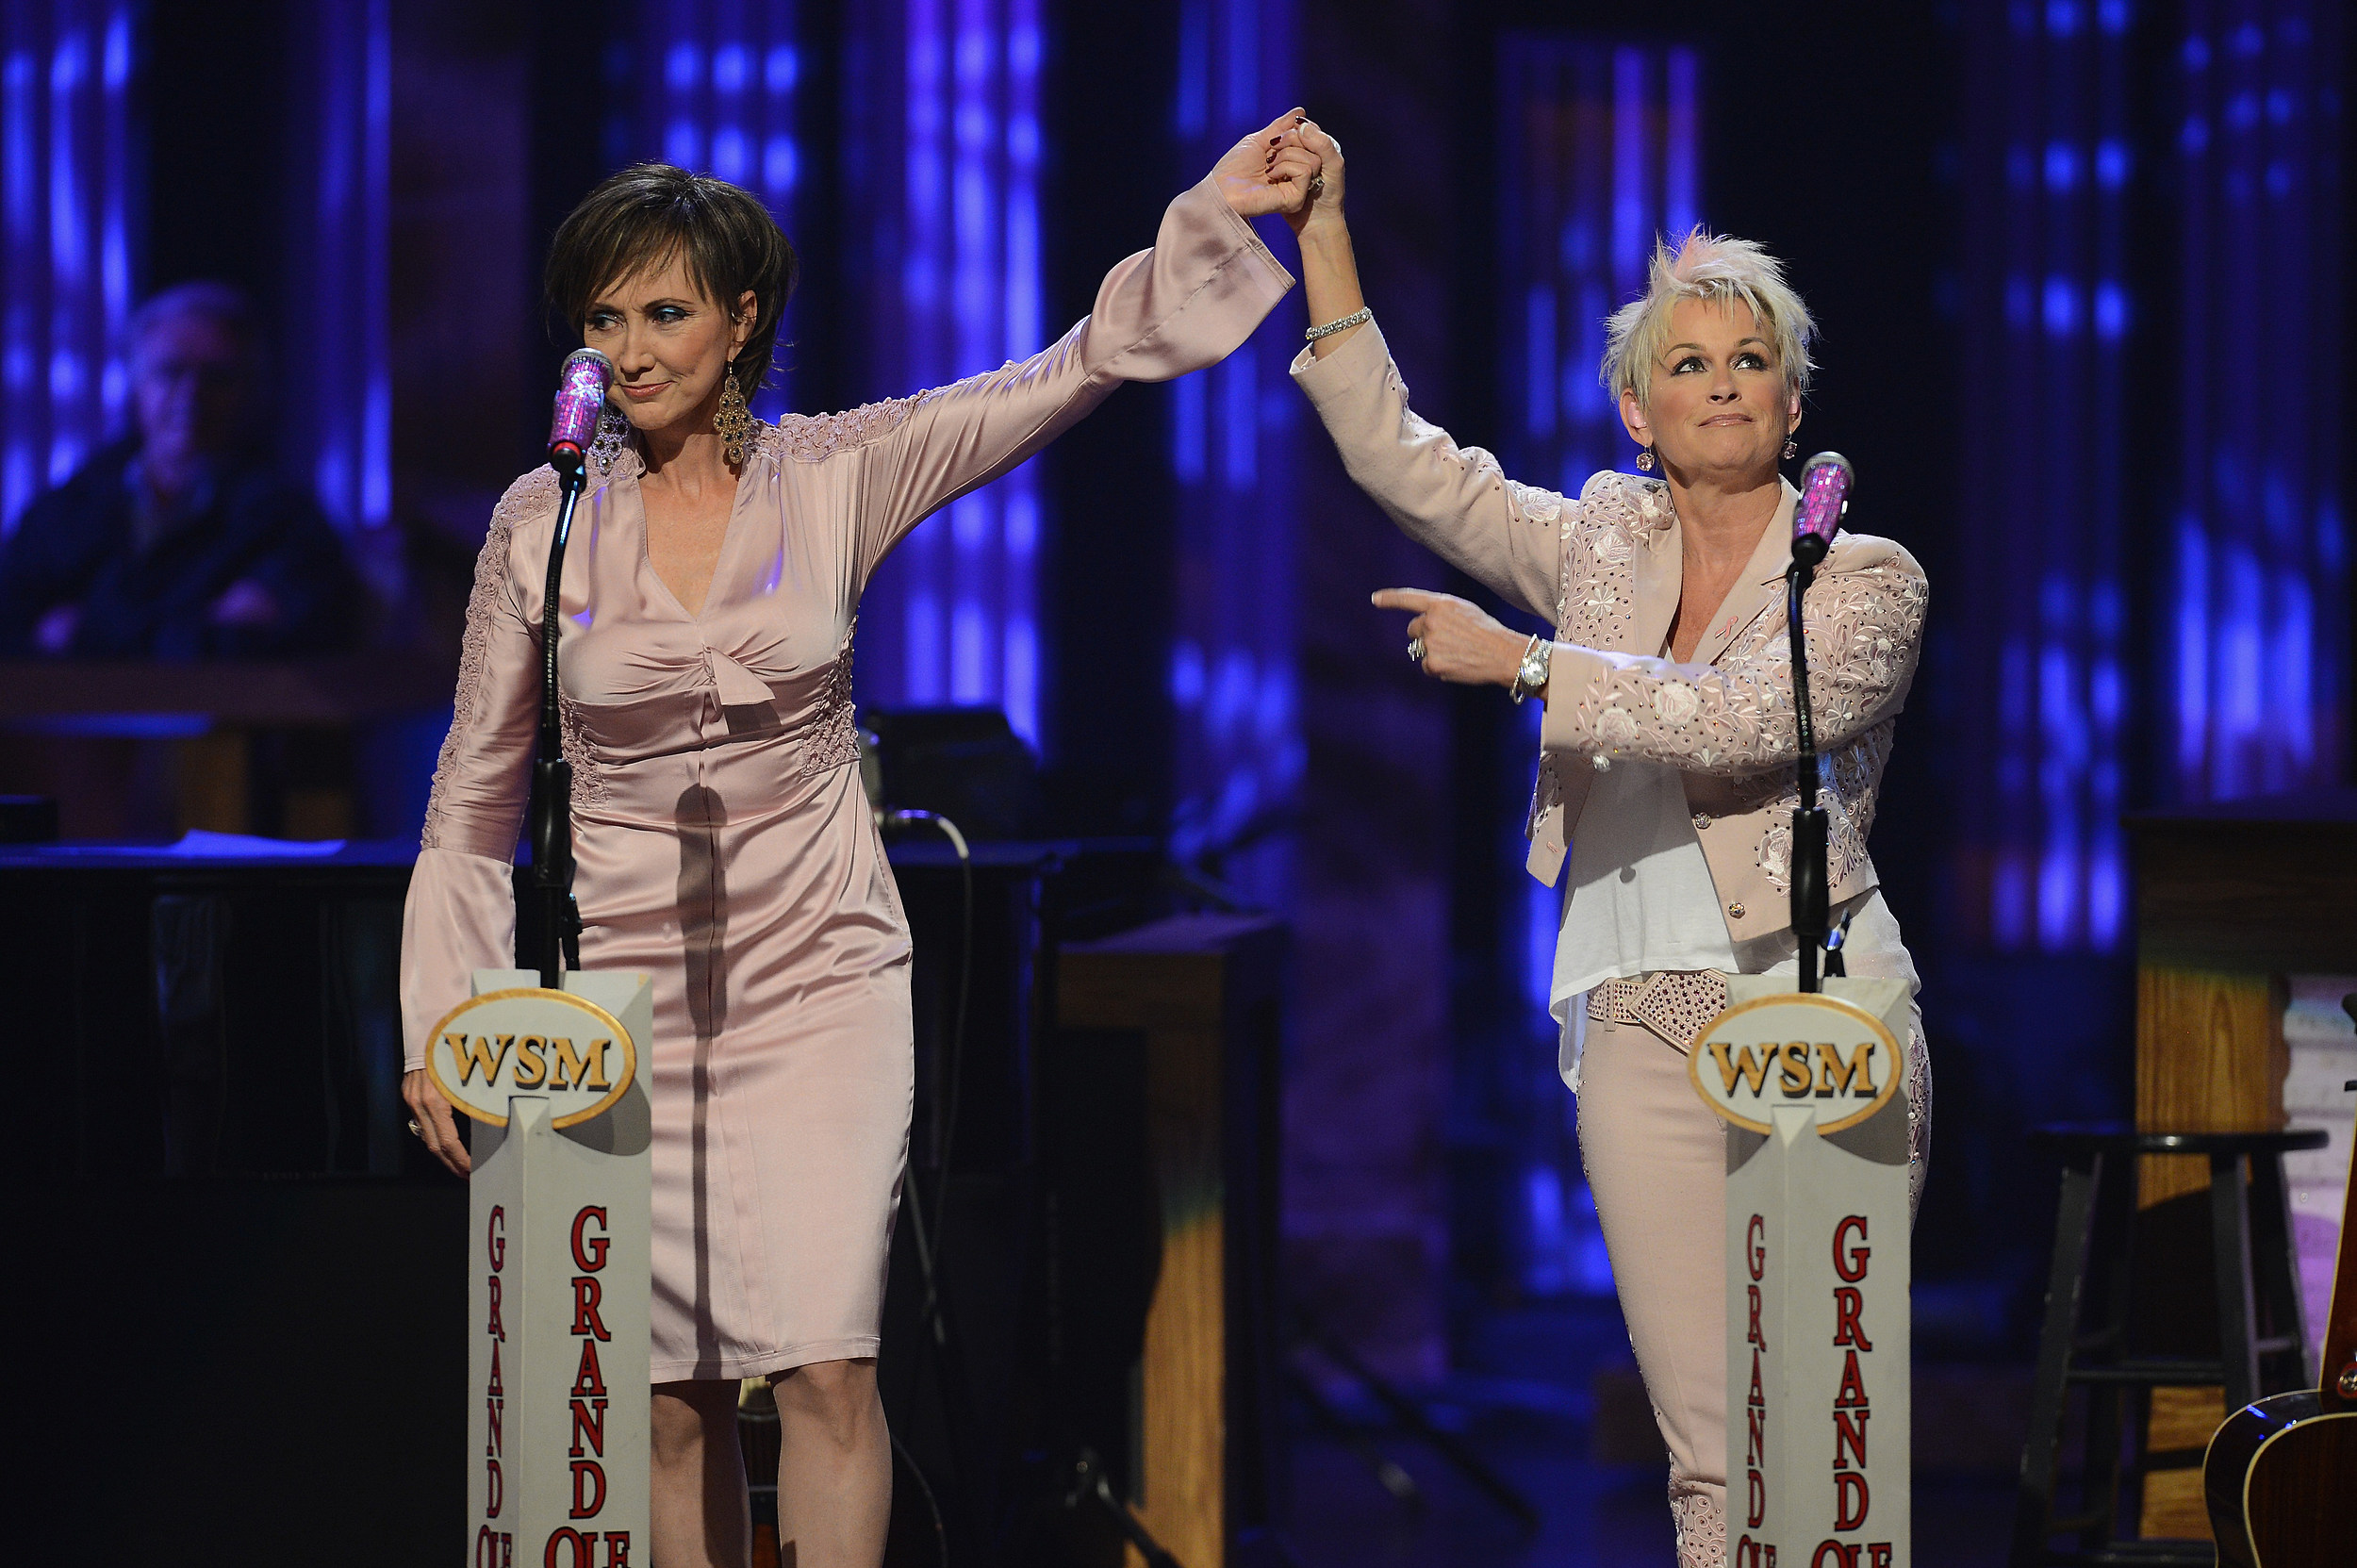 Pam Tillis And Lorrie Morgan Coming To Lake Charles In